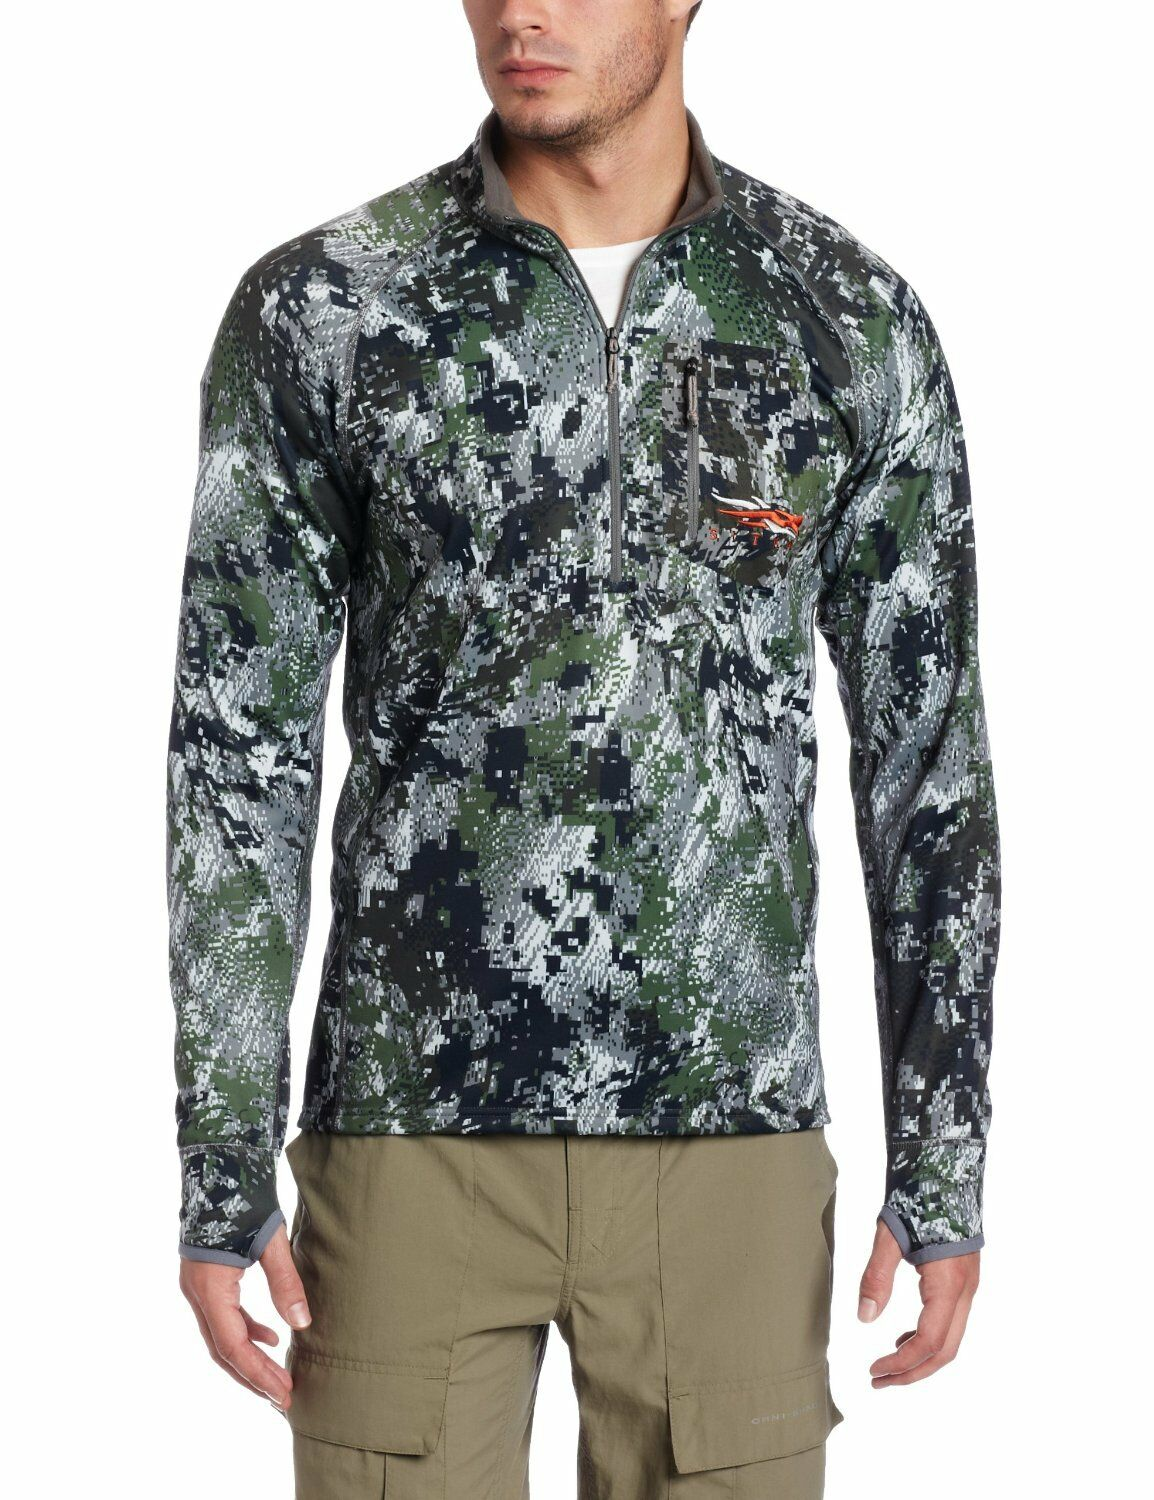 Sitka Gear Traverse  Zip-T  Shirt  Optifade Forest  10001-FR-L  Large